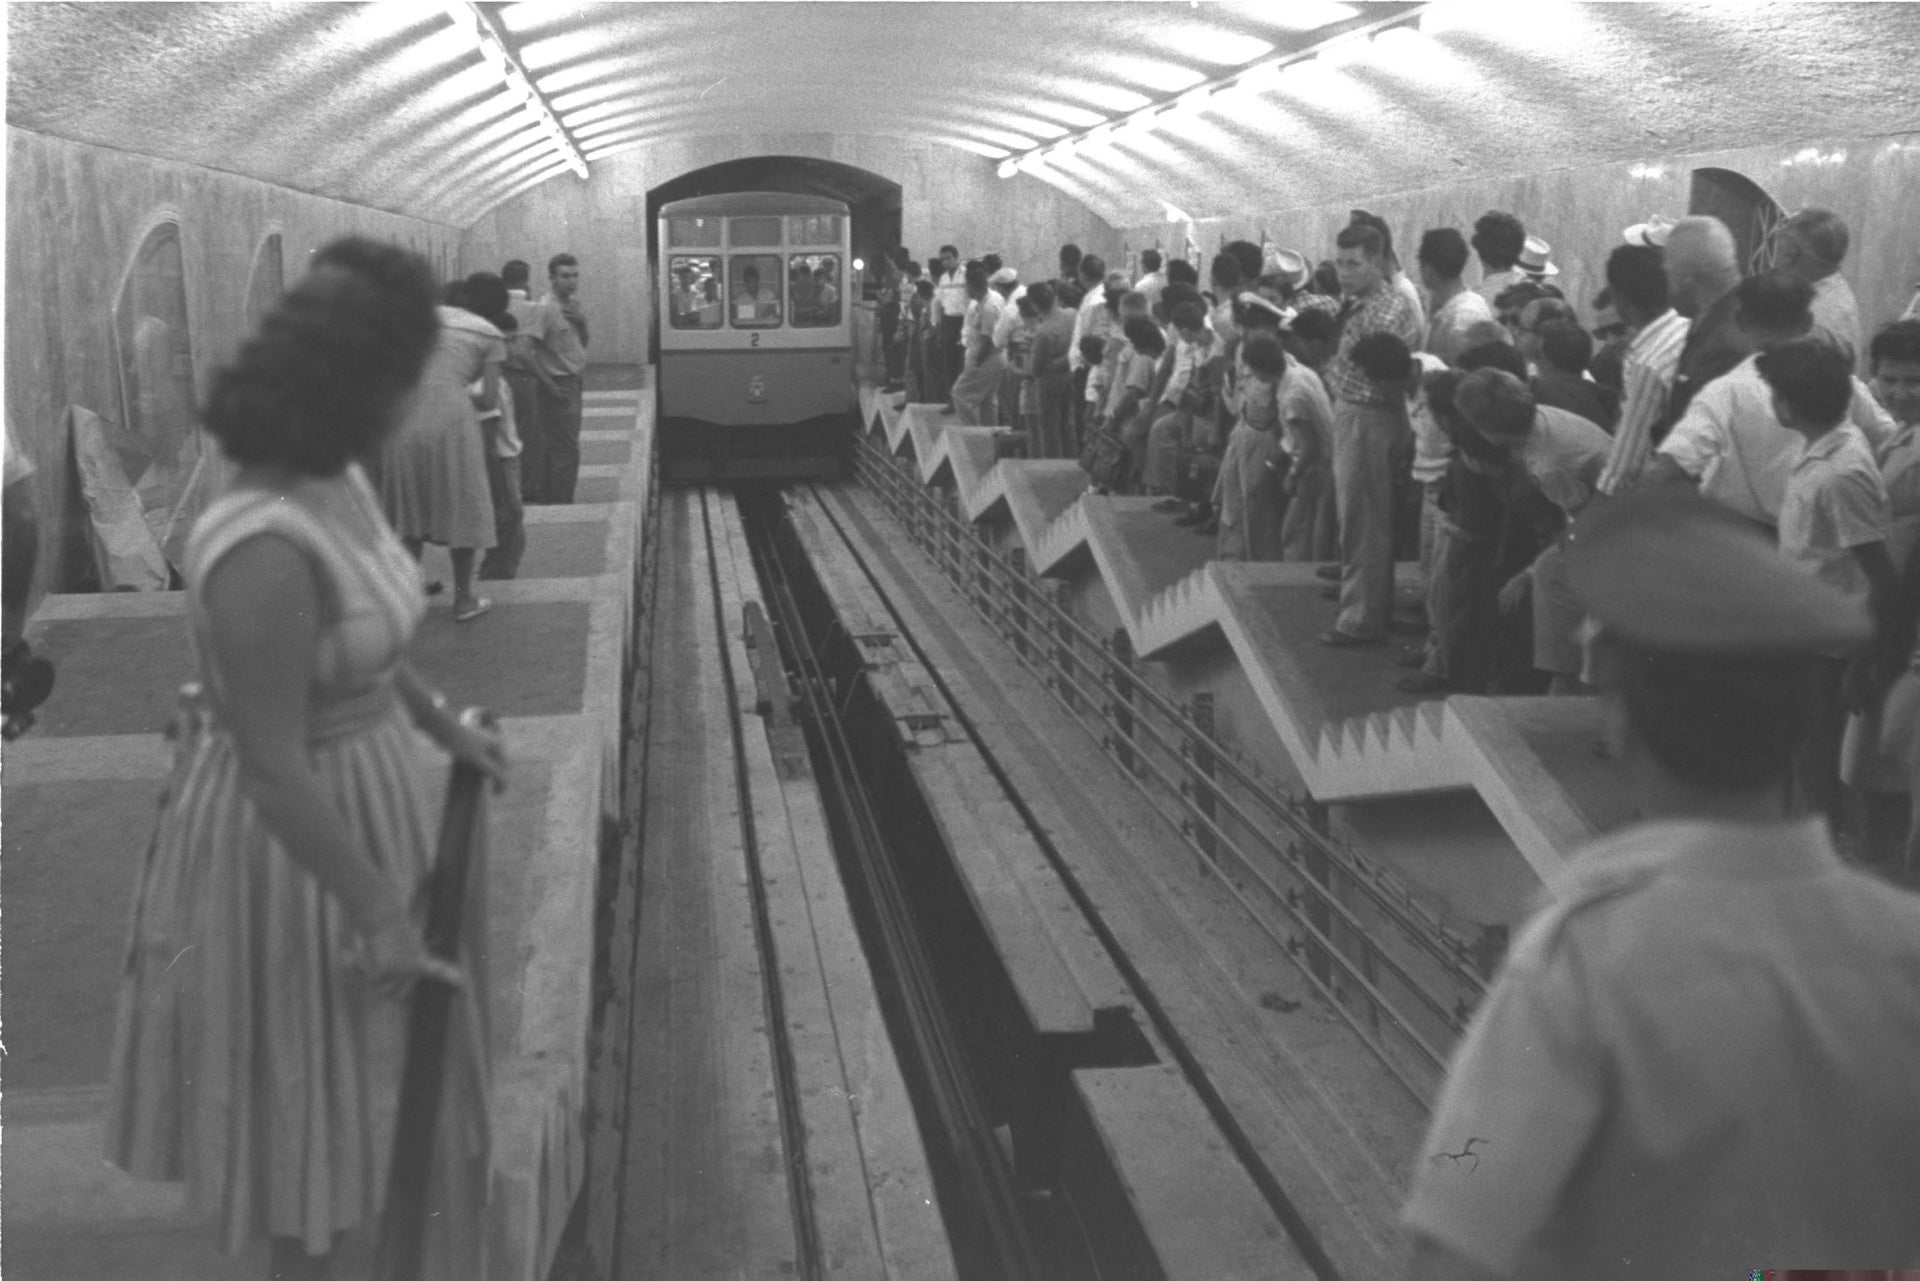 The Carmelit underground subway in Haifa, the first in the country, Oct. 6, 1959.